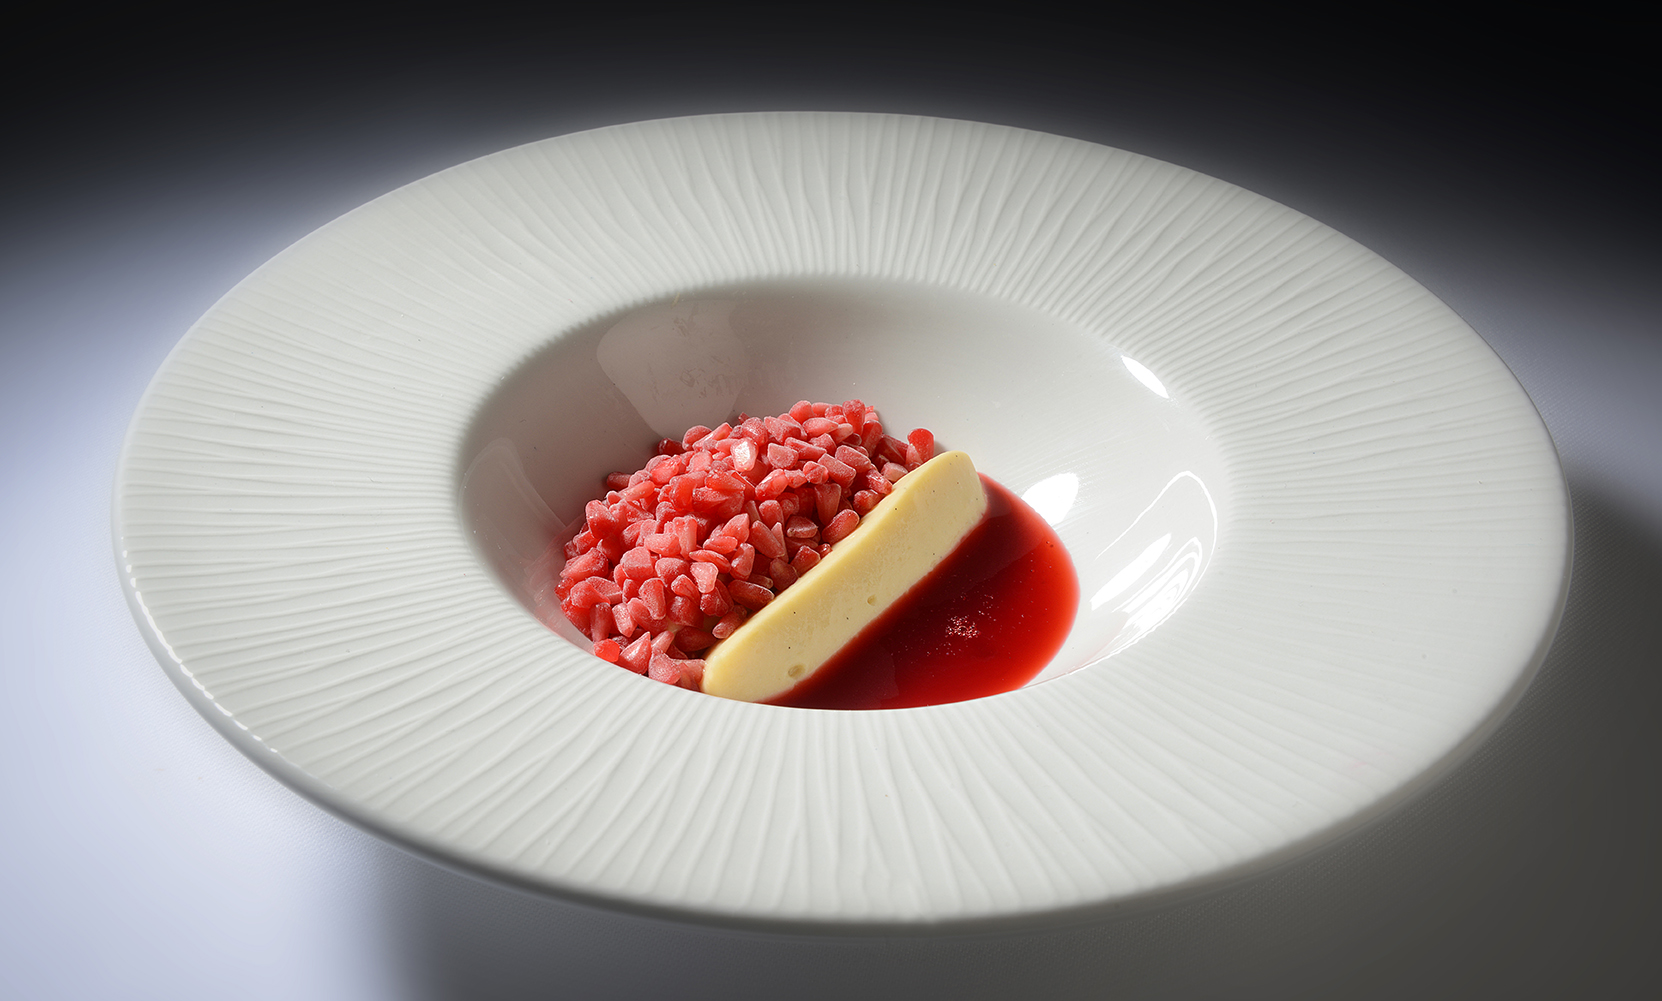 Mead Vinegar Custard, frozen Raspberries and Raspberry Consomme